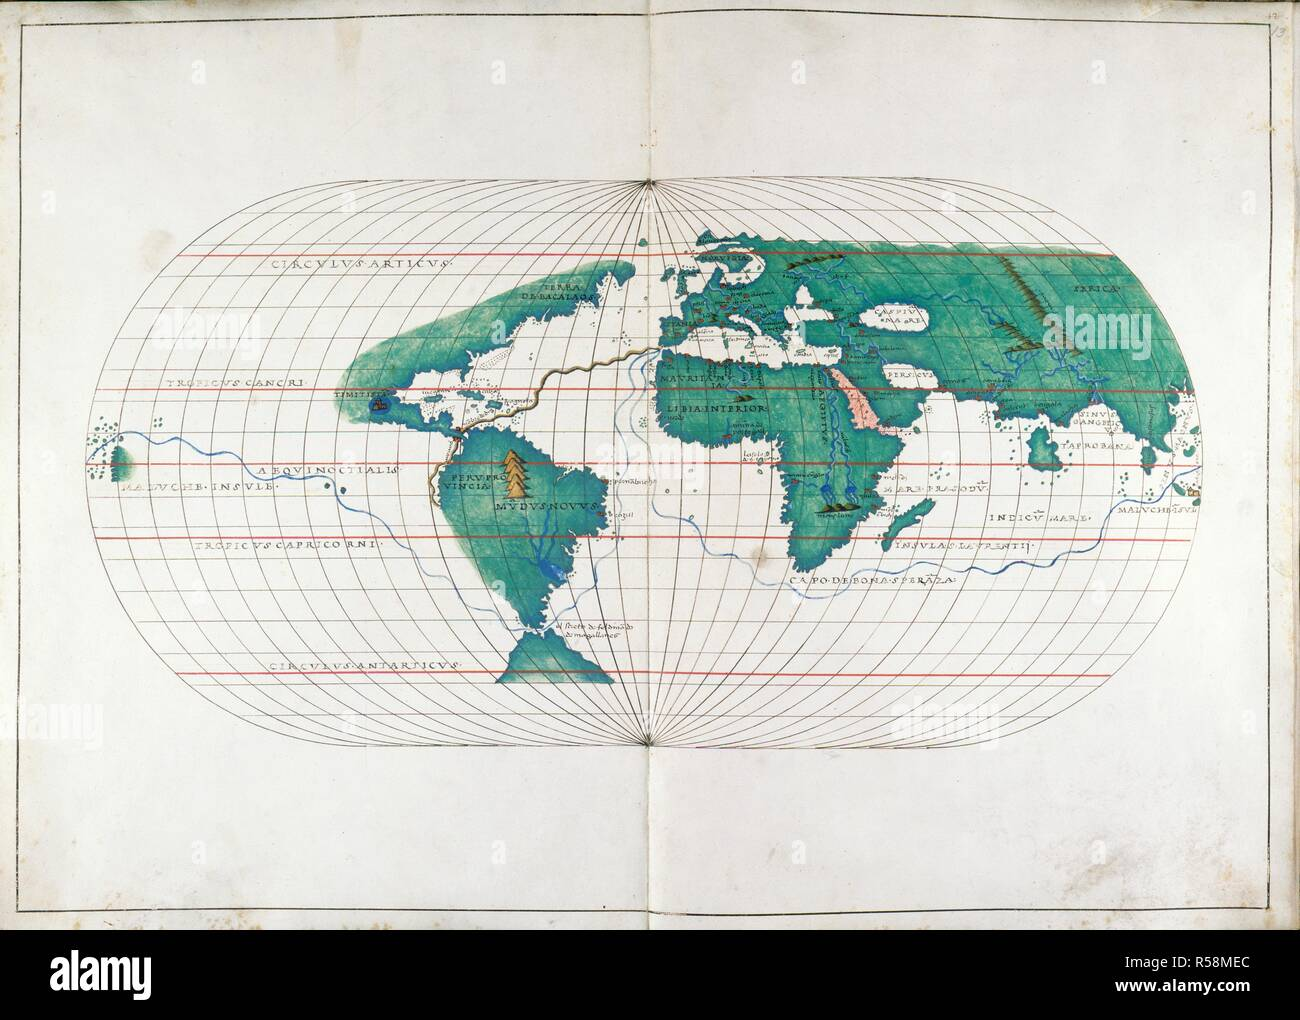 Whole Map Of The World.World Map Portolan Atlas Italy Venice 1536 Whole Map Map Of